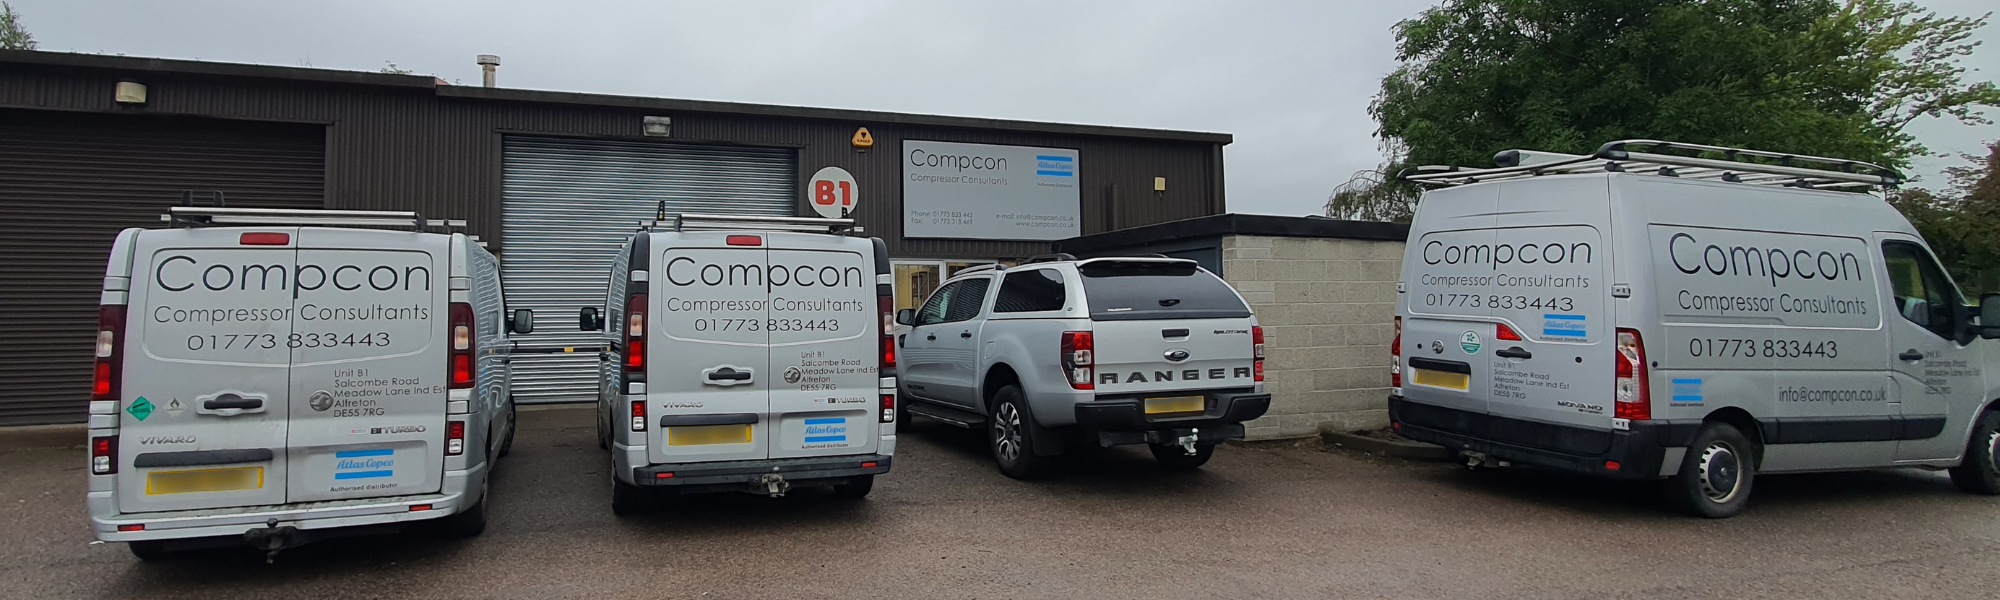 Image of the Compcon branch in Alfreton